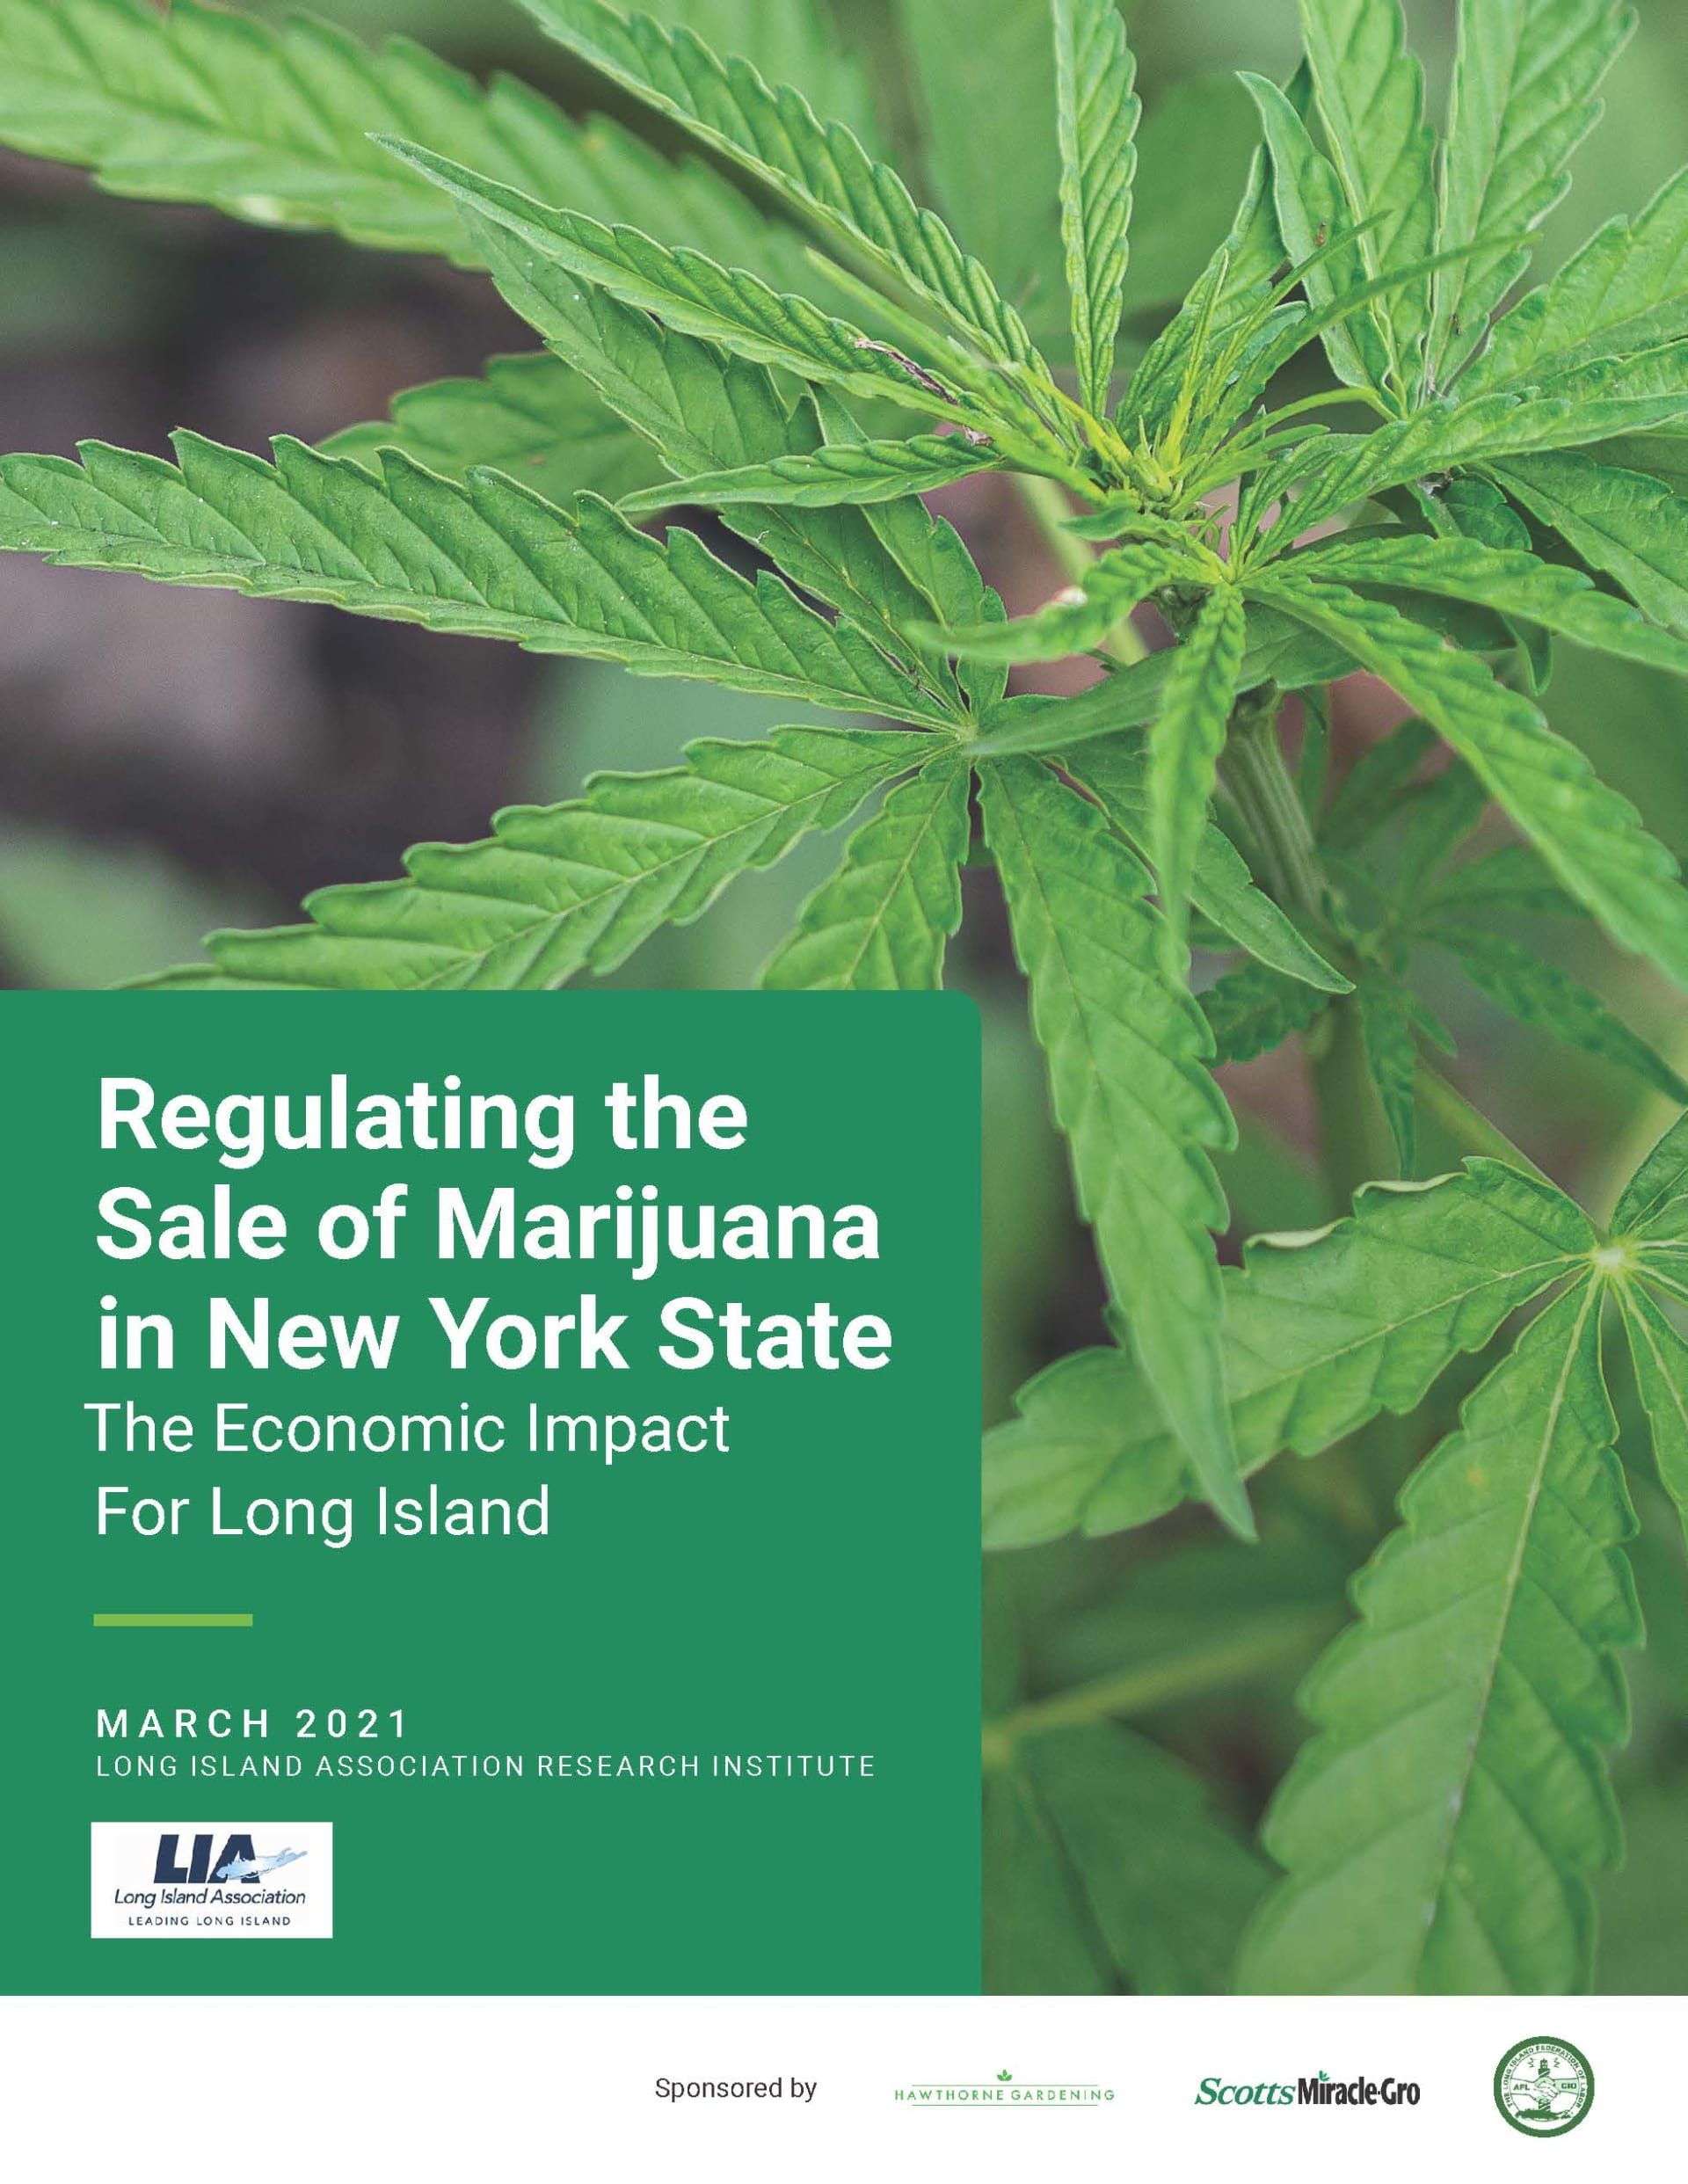 Regulating the Sale of Marijuana in New York State